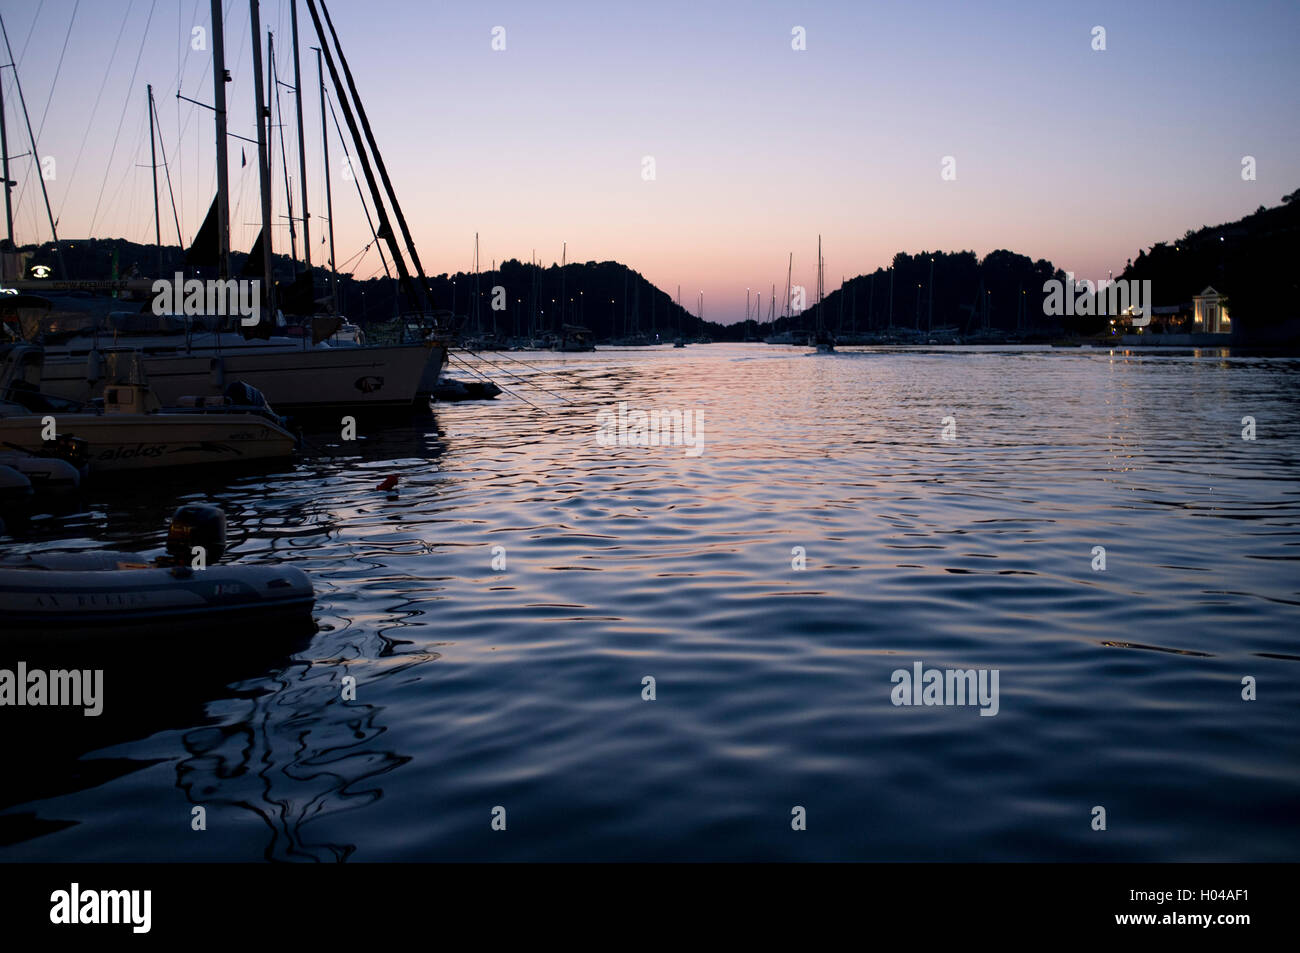 Sunset in Lakka harbour on the island of Paxos, The Ionian Islands, The Greek Islands, Greece, Europe - Stock Image